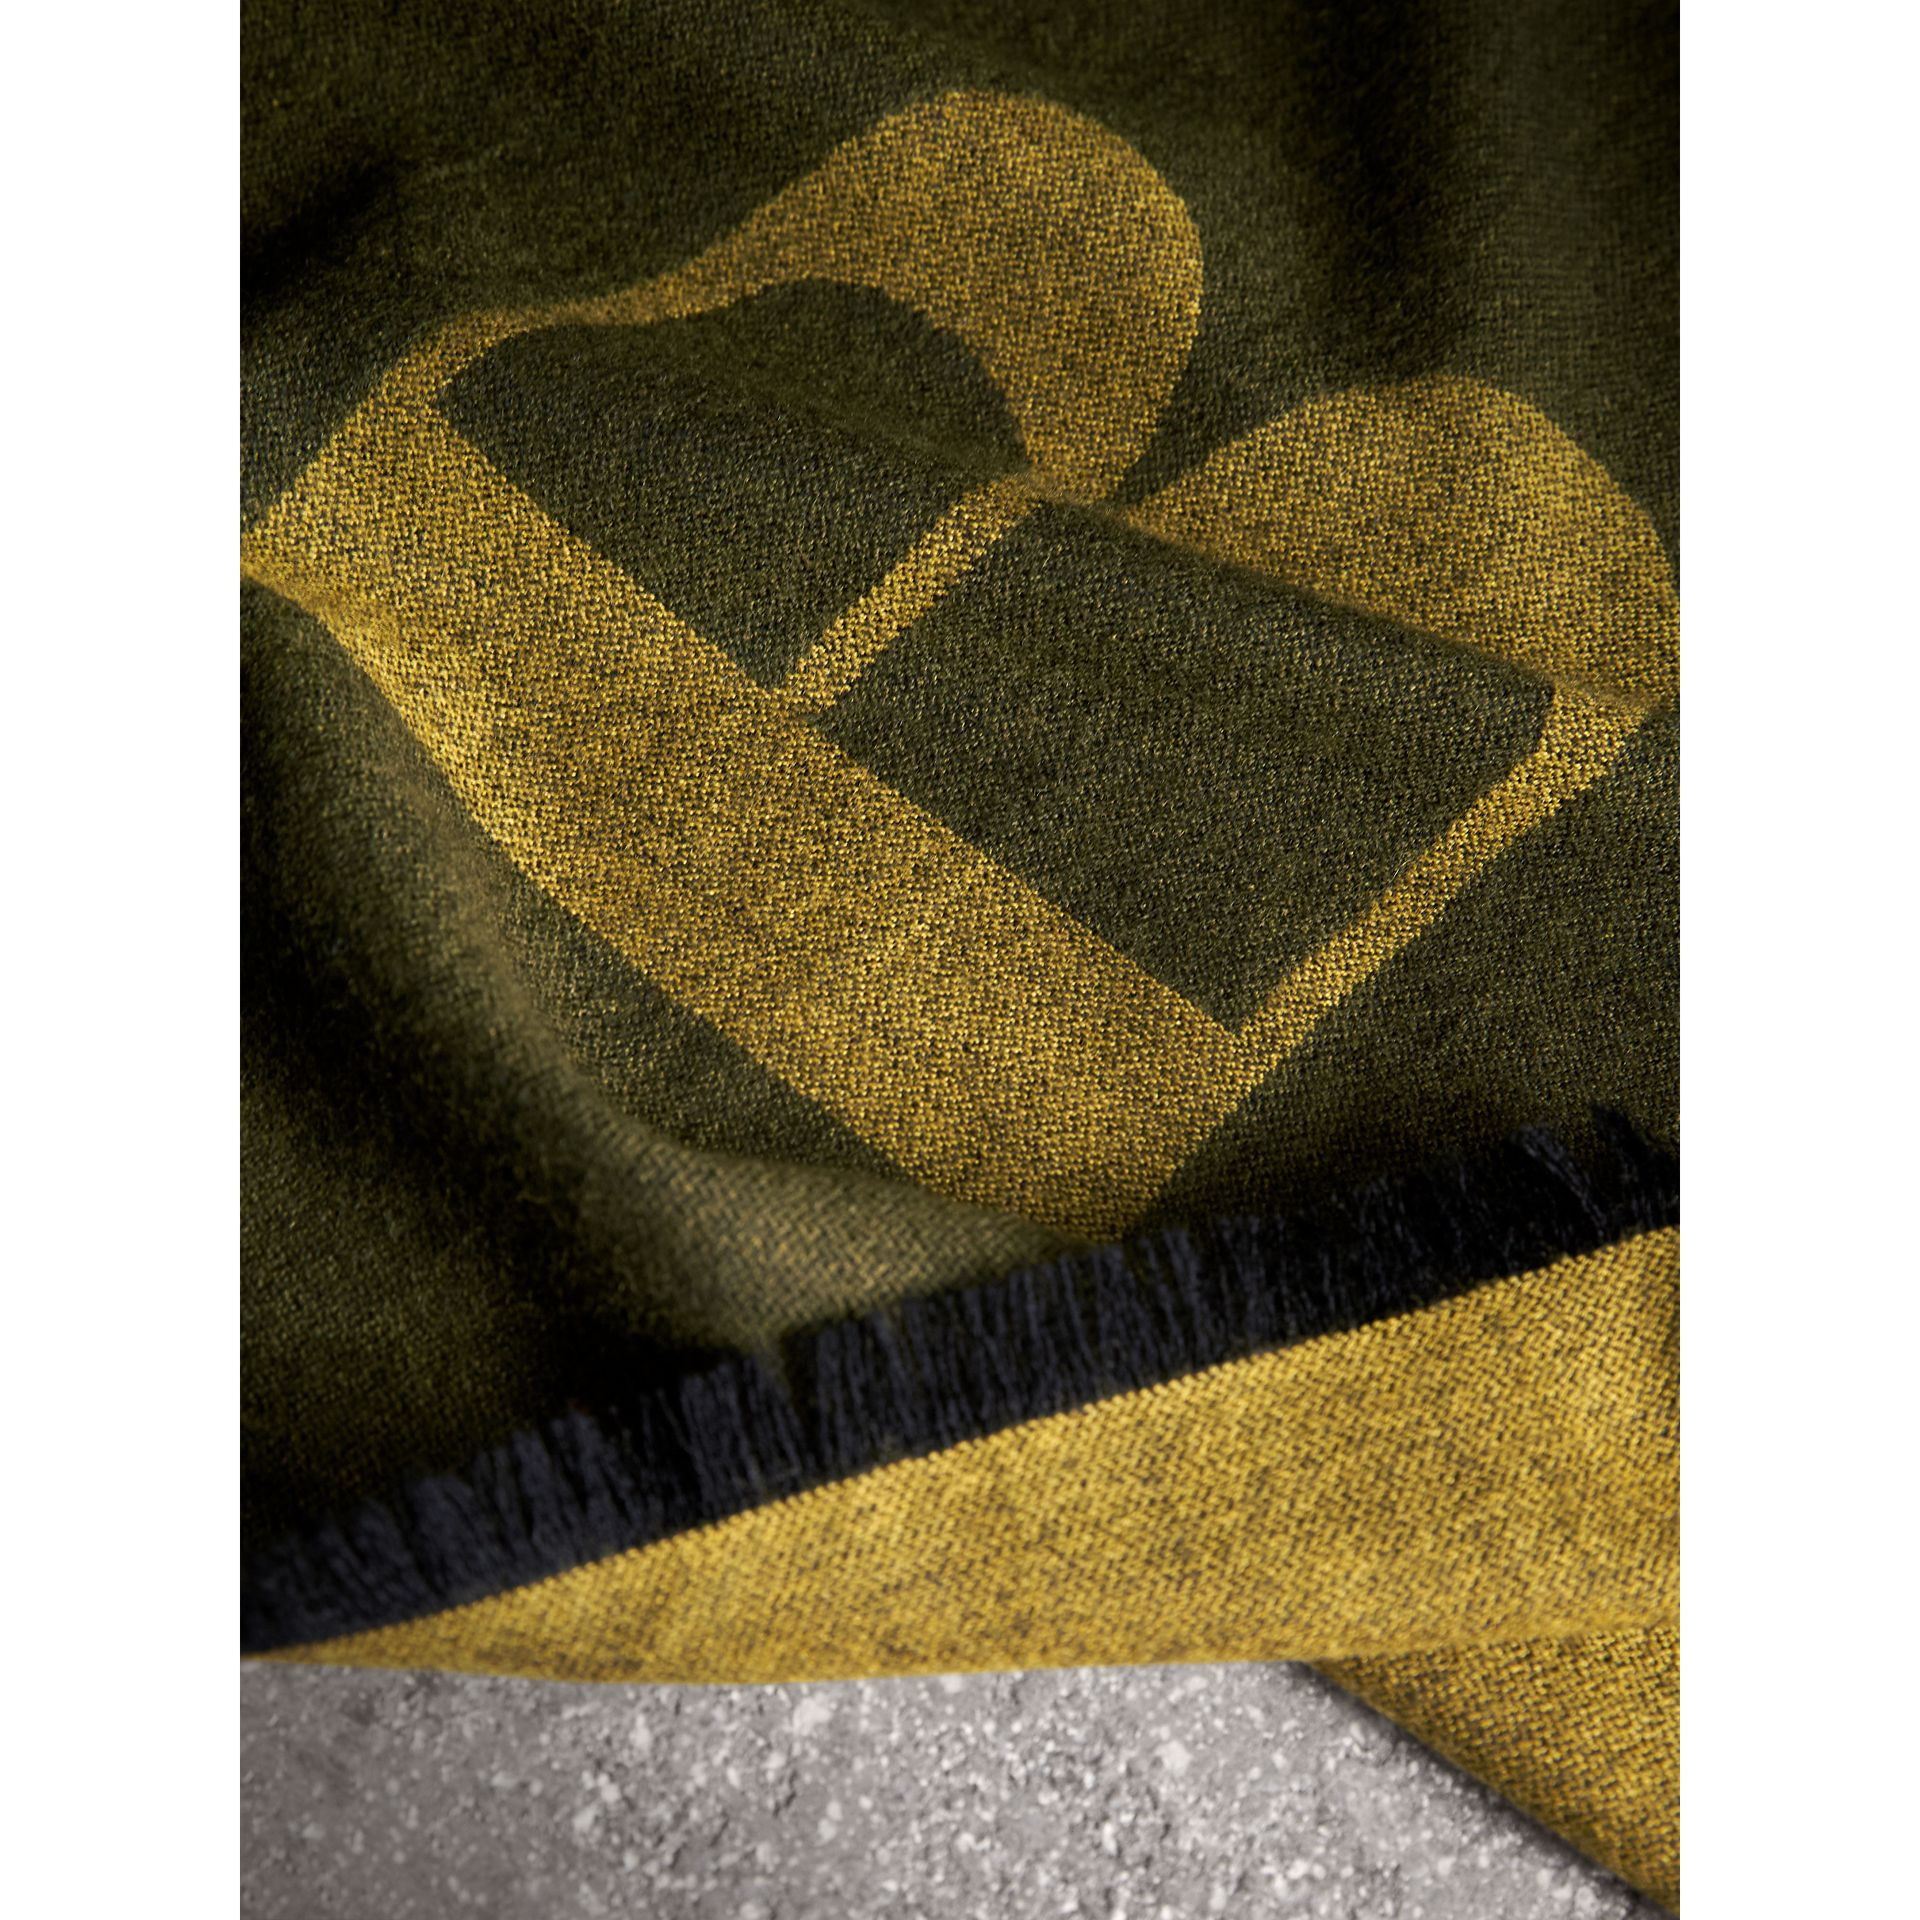 Graphic Print Motif Cashmere Wrap in Olive - Women | Burberry - gallery image 2